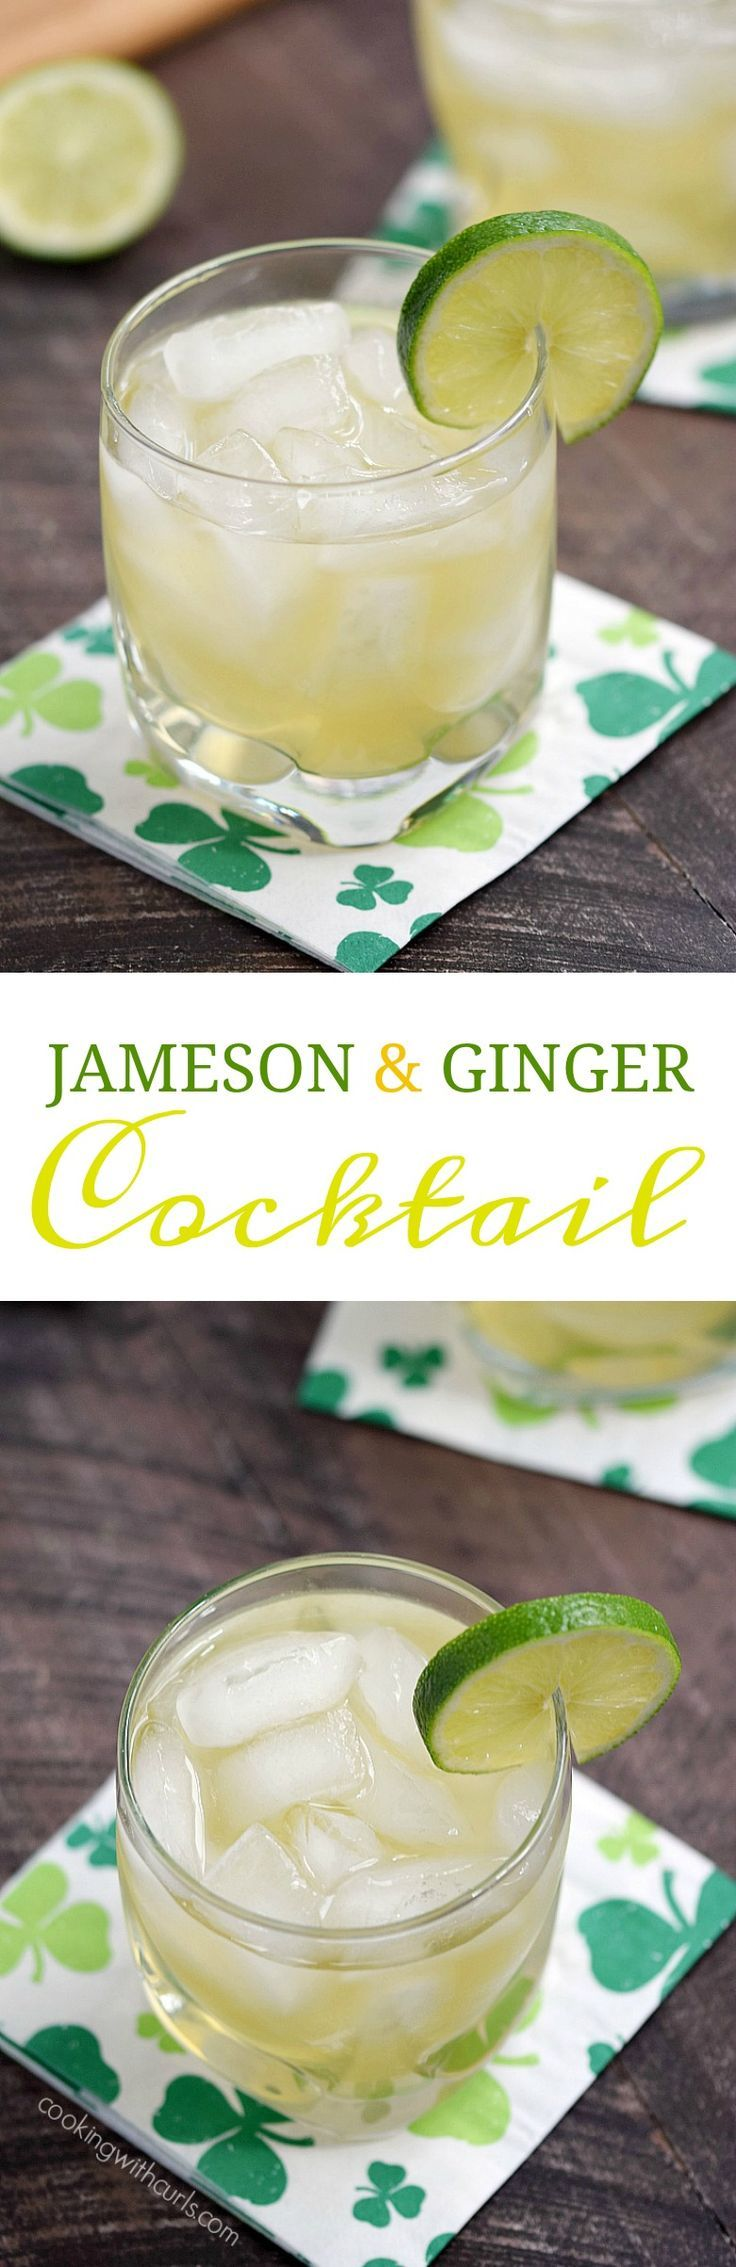 This Jameson & Ginger is guaranteed to have your Irish eyes smiling with it's light and refreshing flavors even if you aren't Irish! http://cookingwithcurls.com